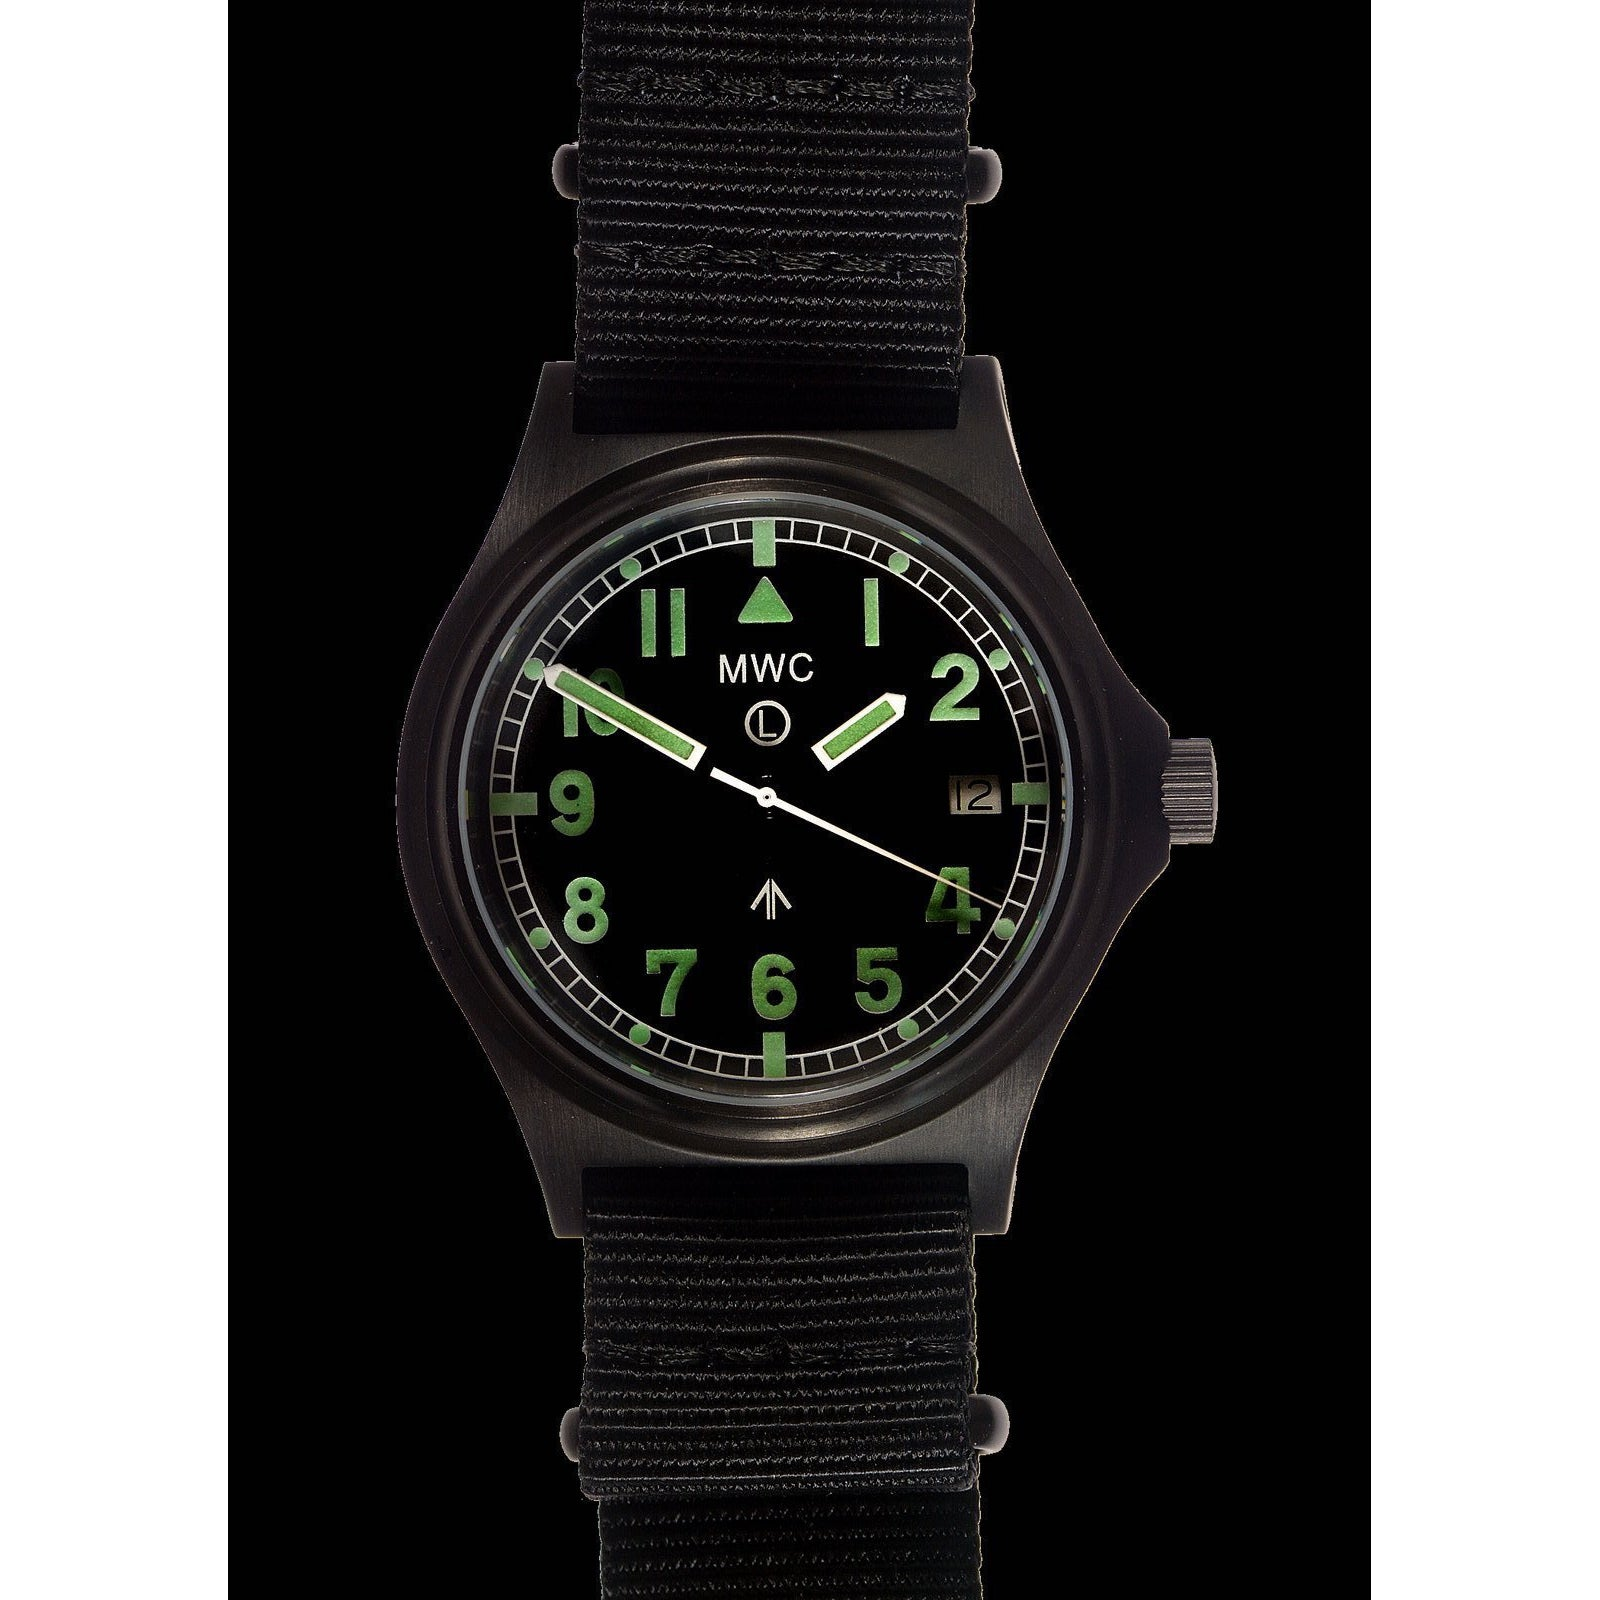 MWC G10 300m / 1000ft Water resistant Limited Edition Brushed Black PVD Steel Military Watch with Sapphire Crystal on NATO Strap